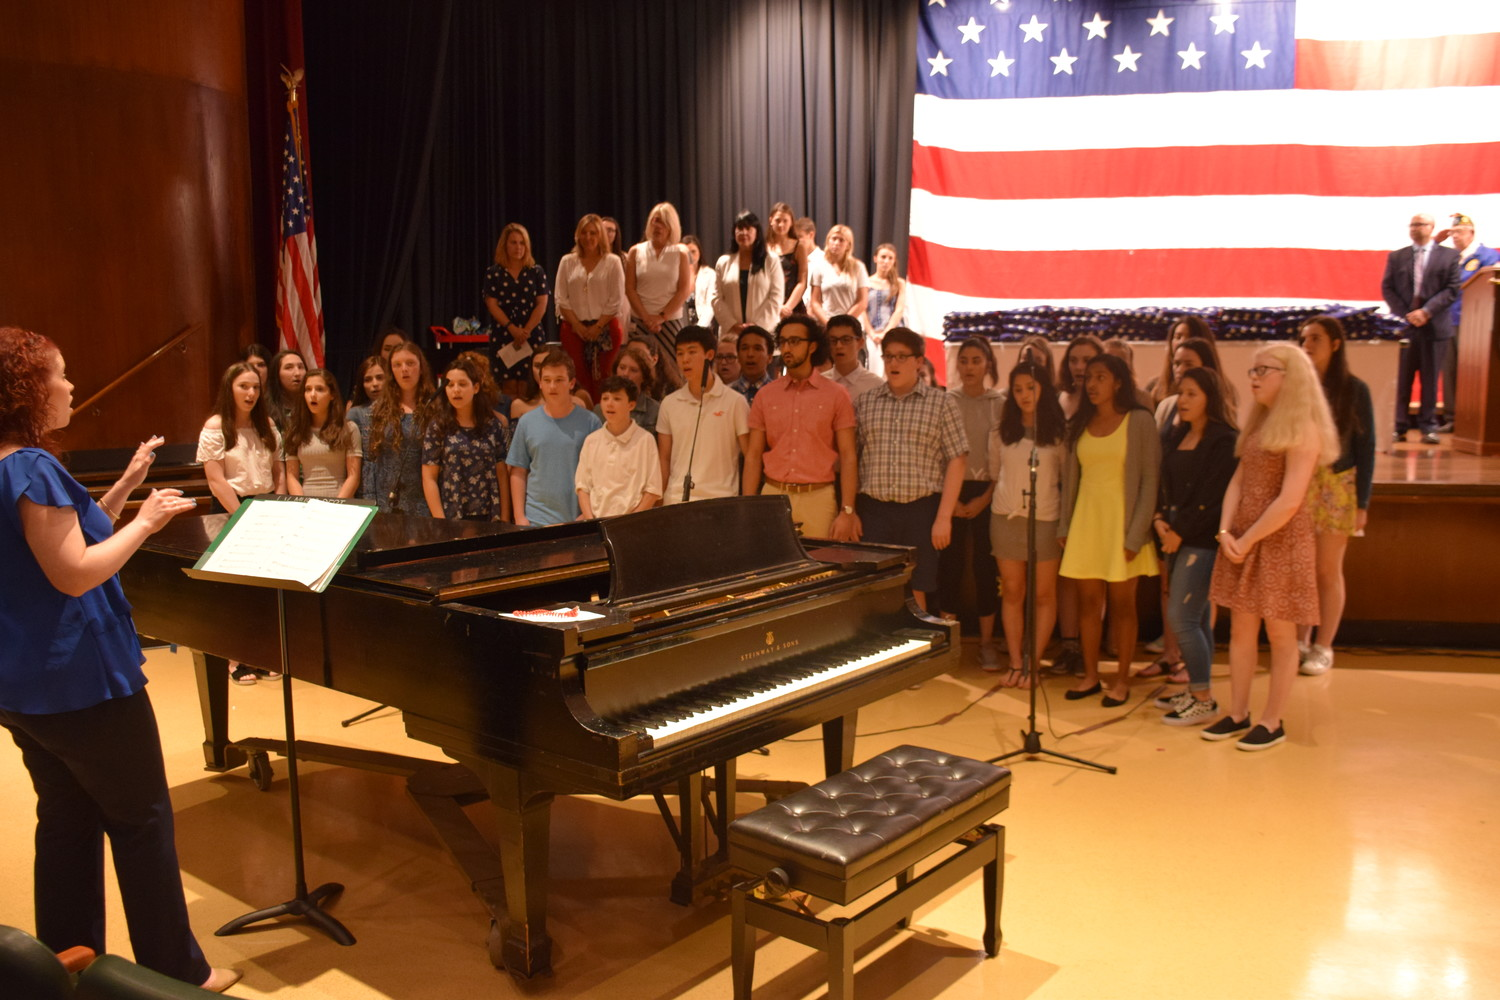 The Locust Valley High School Concert Chorale, led by Allison Hungate-Wood, performed patriotic songs.